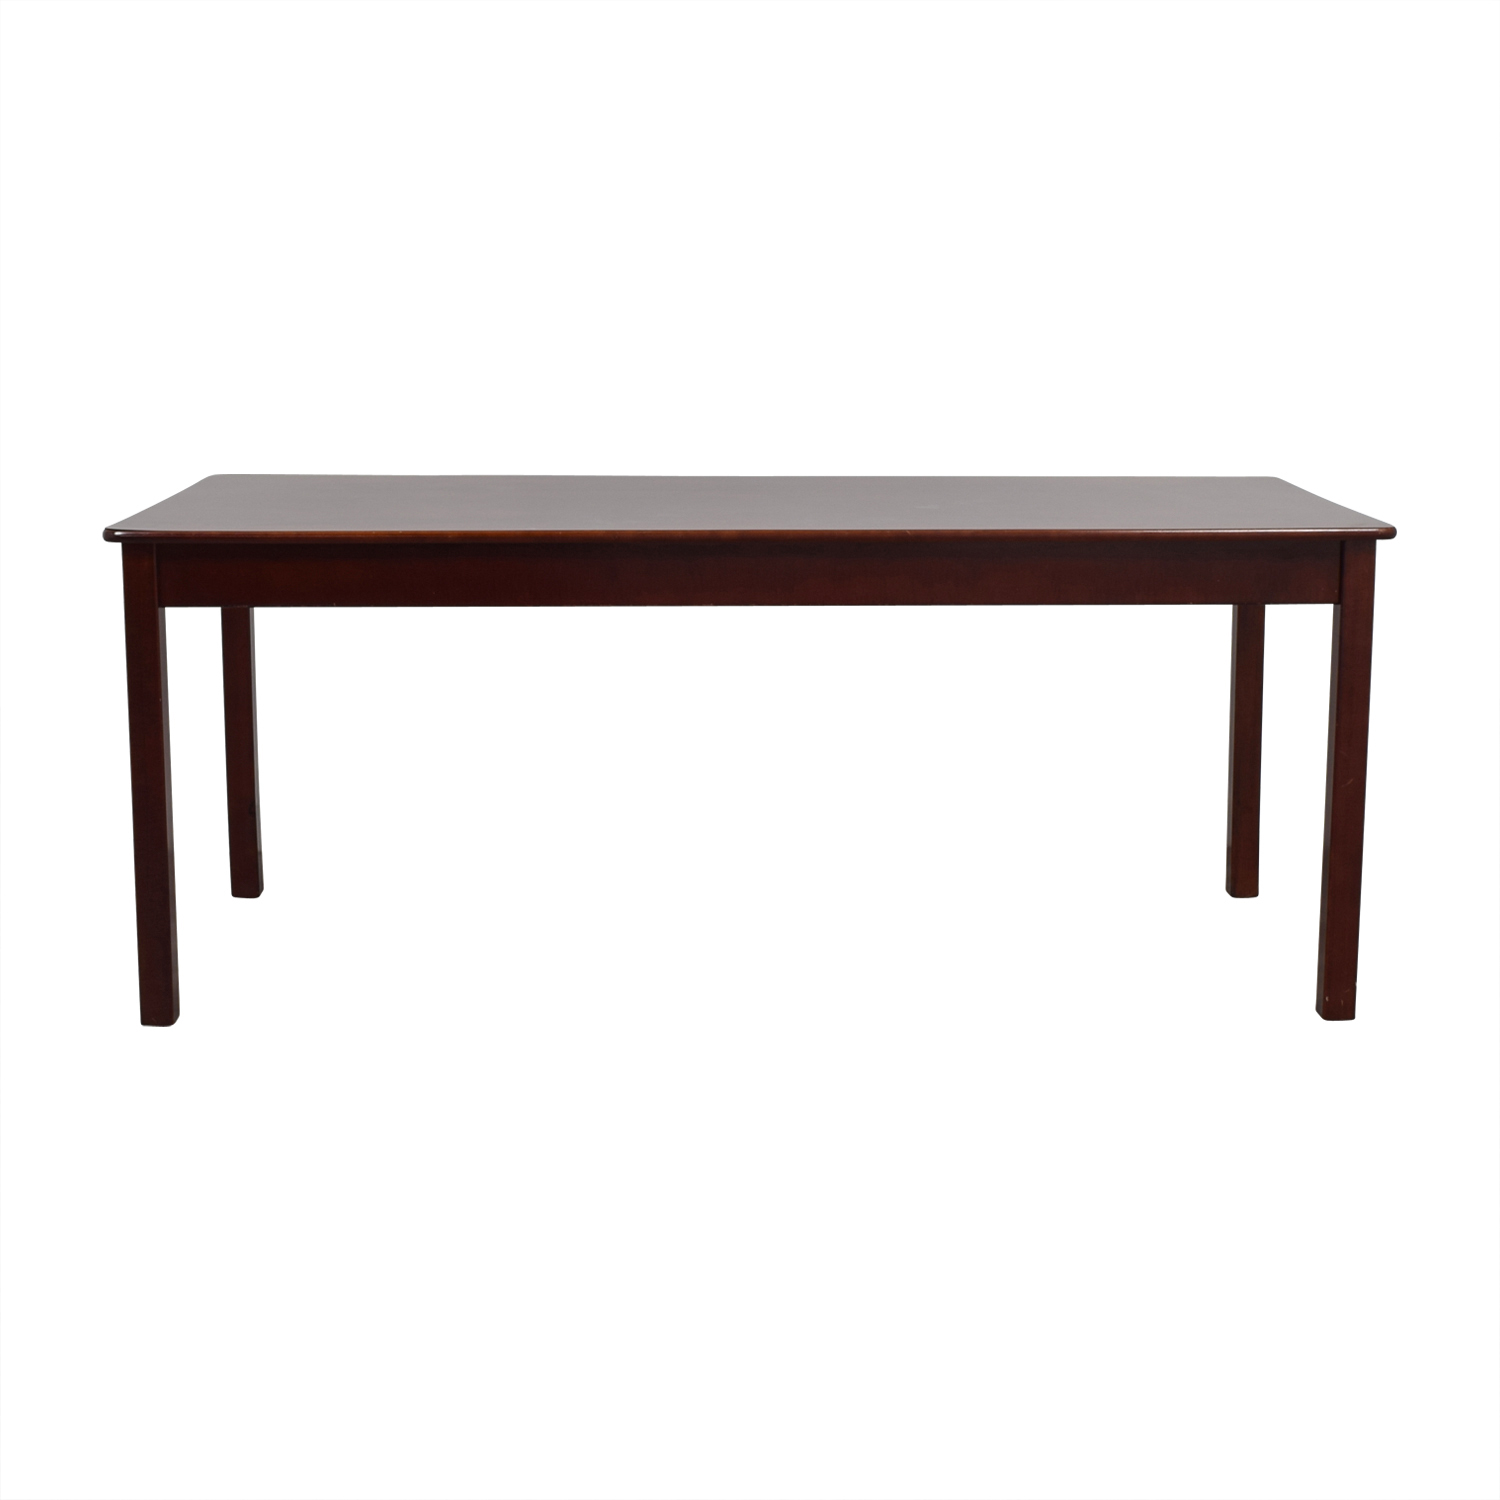 Hon Hon Rectangular Cherry Wood Table coupon